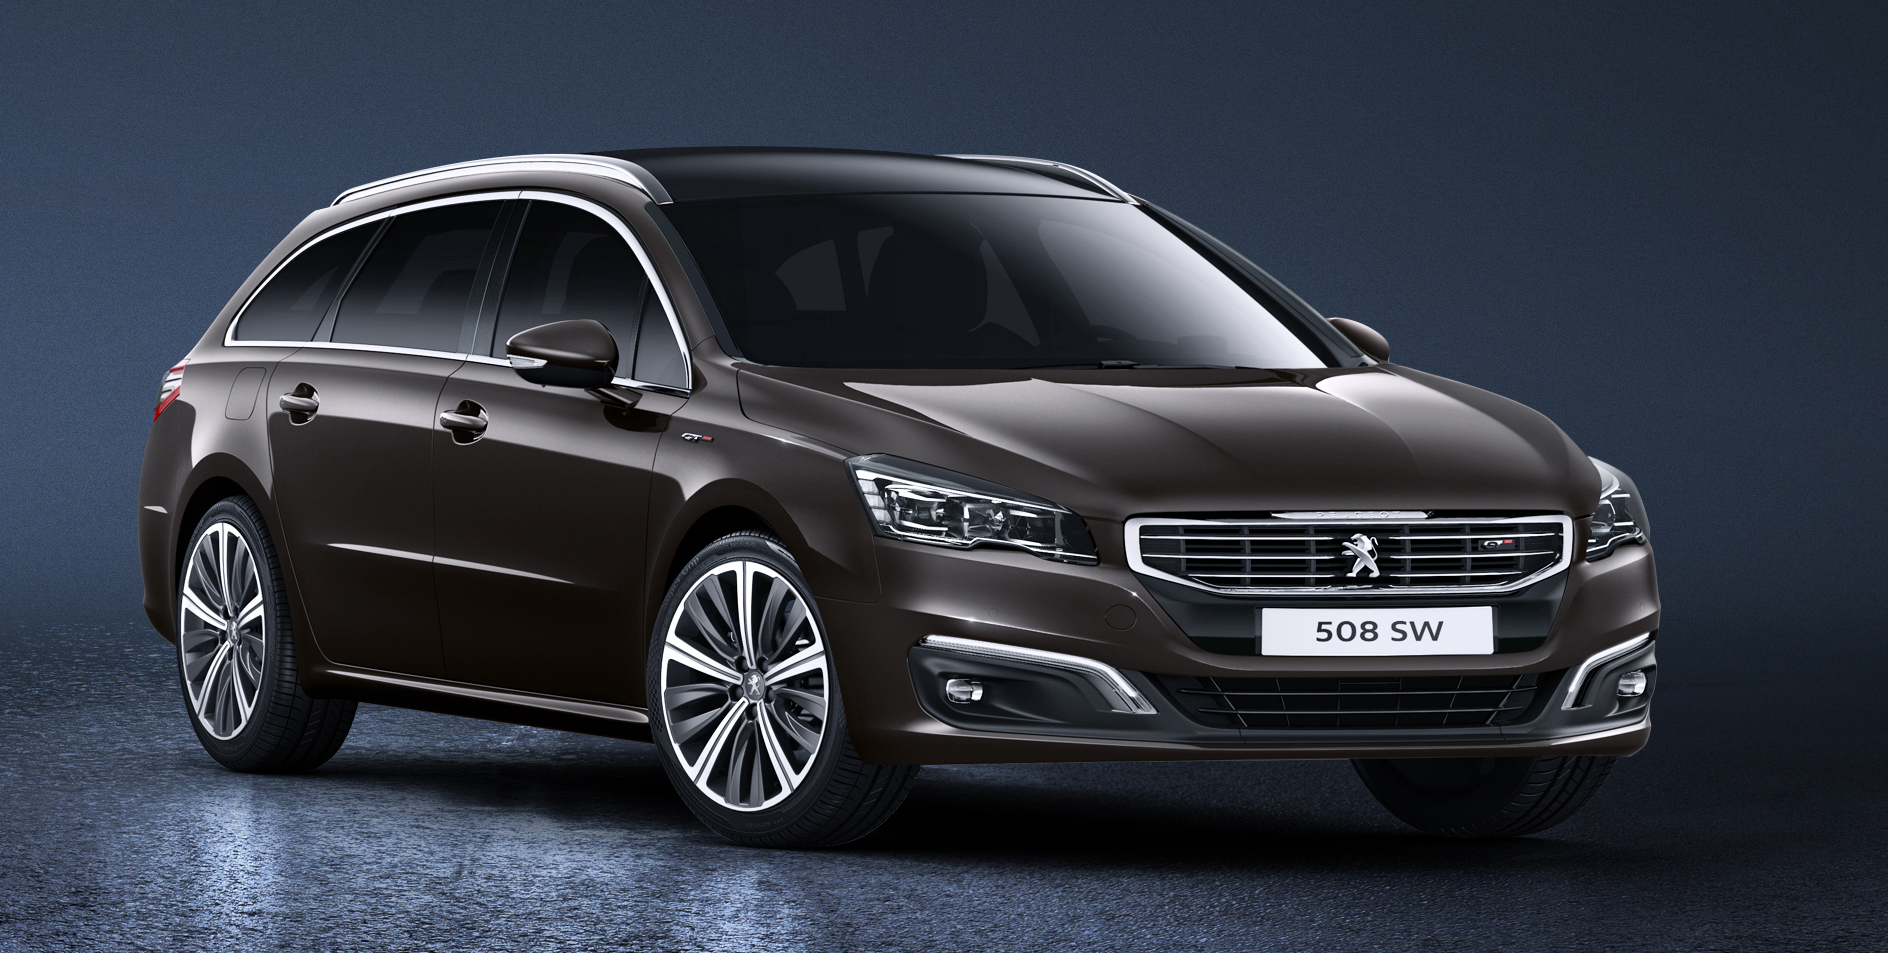 peugeot 508 facelift unveiled new face and engines image 254706. Black Bedroom Furniture Sets. Home Design Ideas